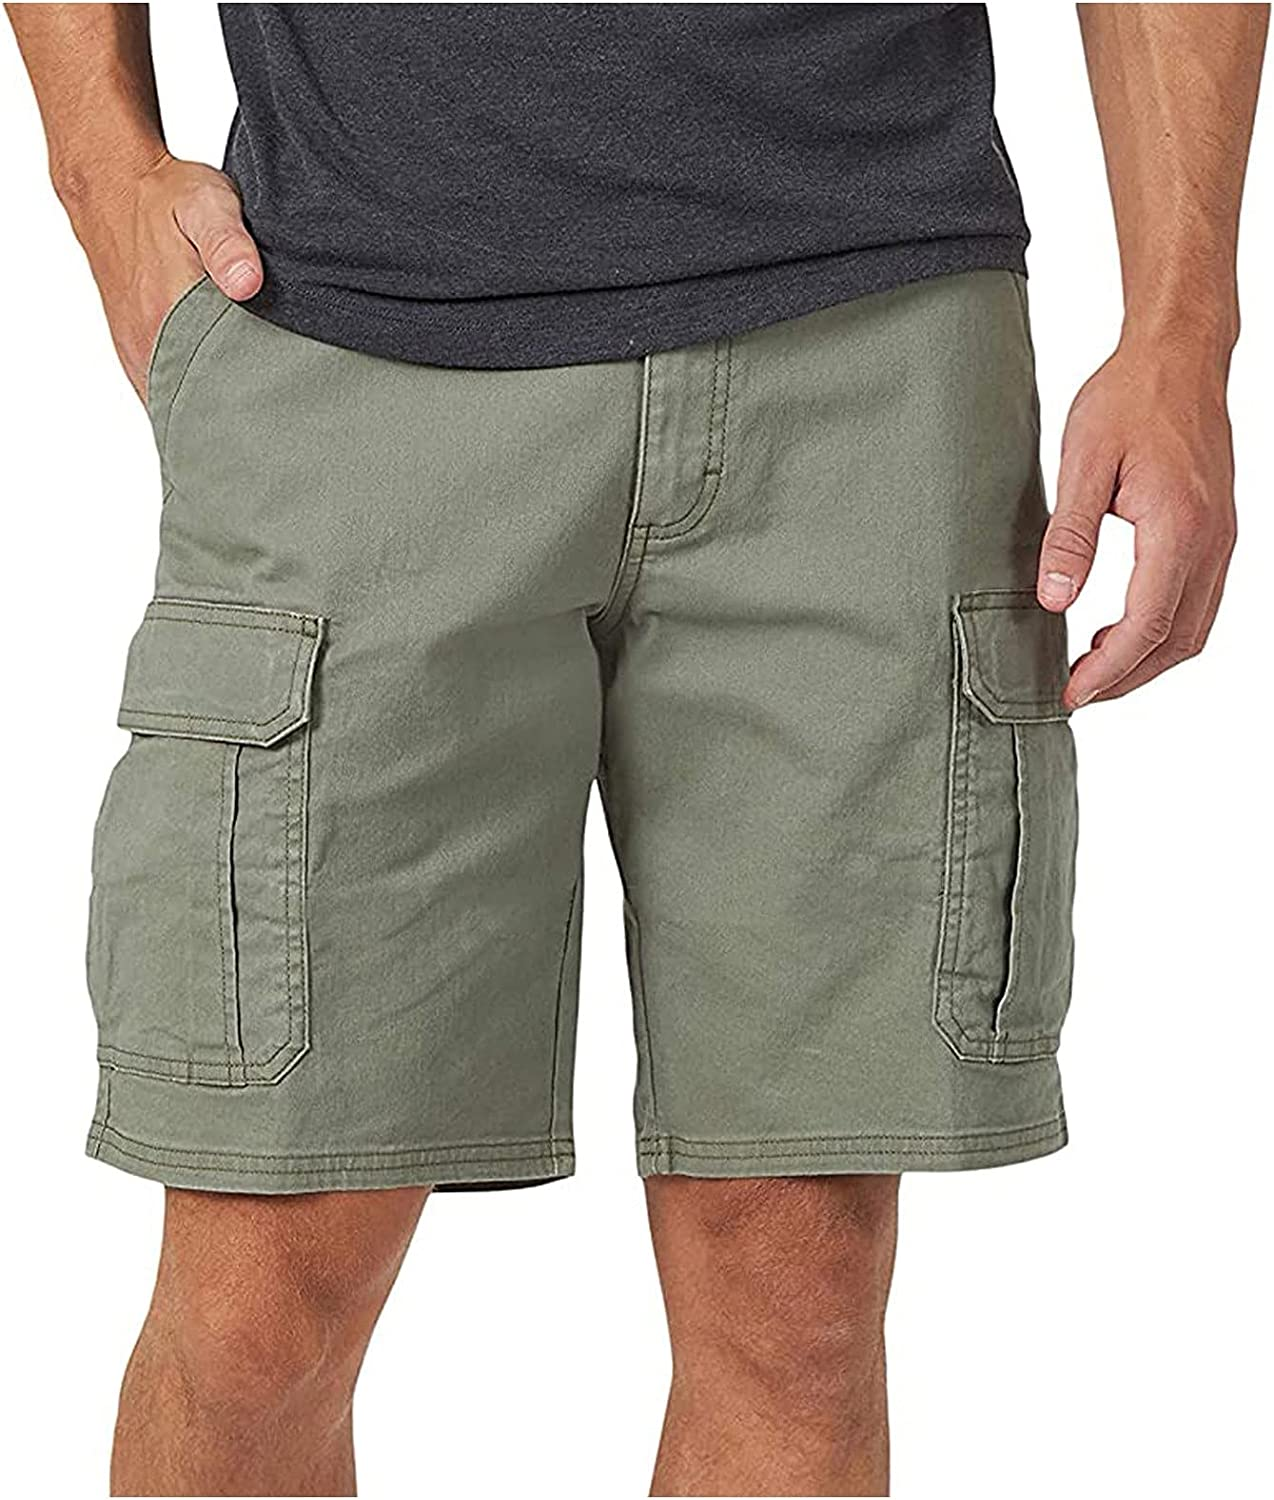 Maryia Cargo Work Pants for Men Casual Stretch Comfy Adjustable Belt Outdoor Hiking Shorts